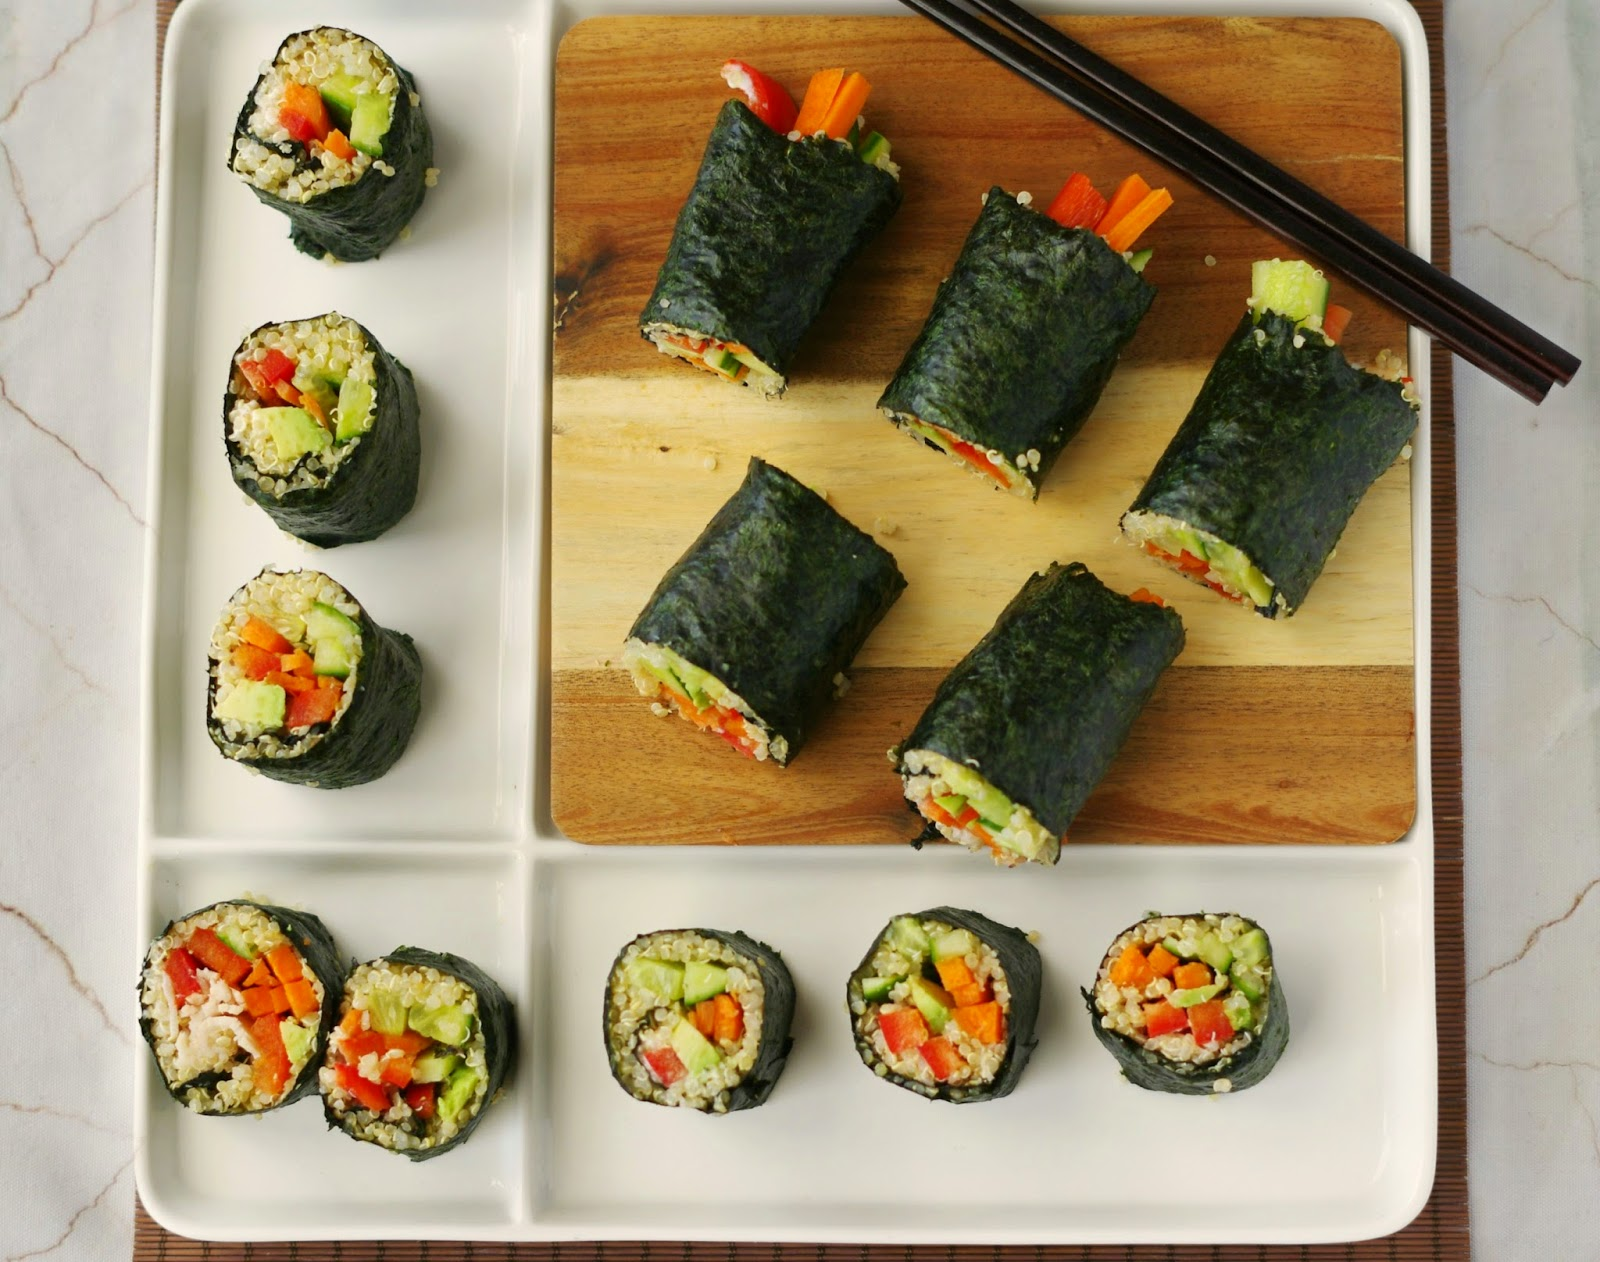 So you can make these Vegetarian Quinoa Nori Rolls in under 15 minutes ...